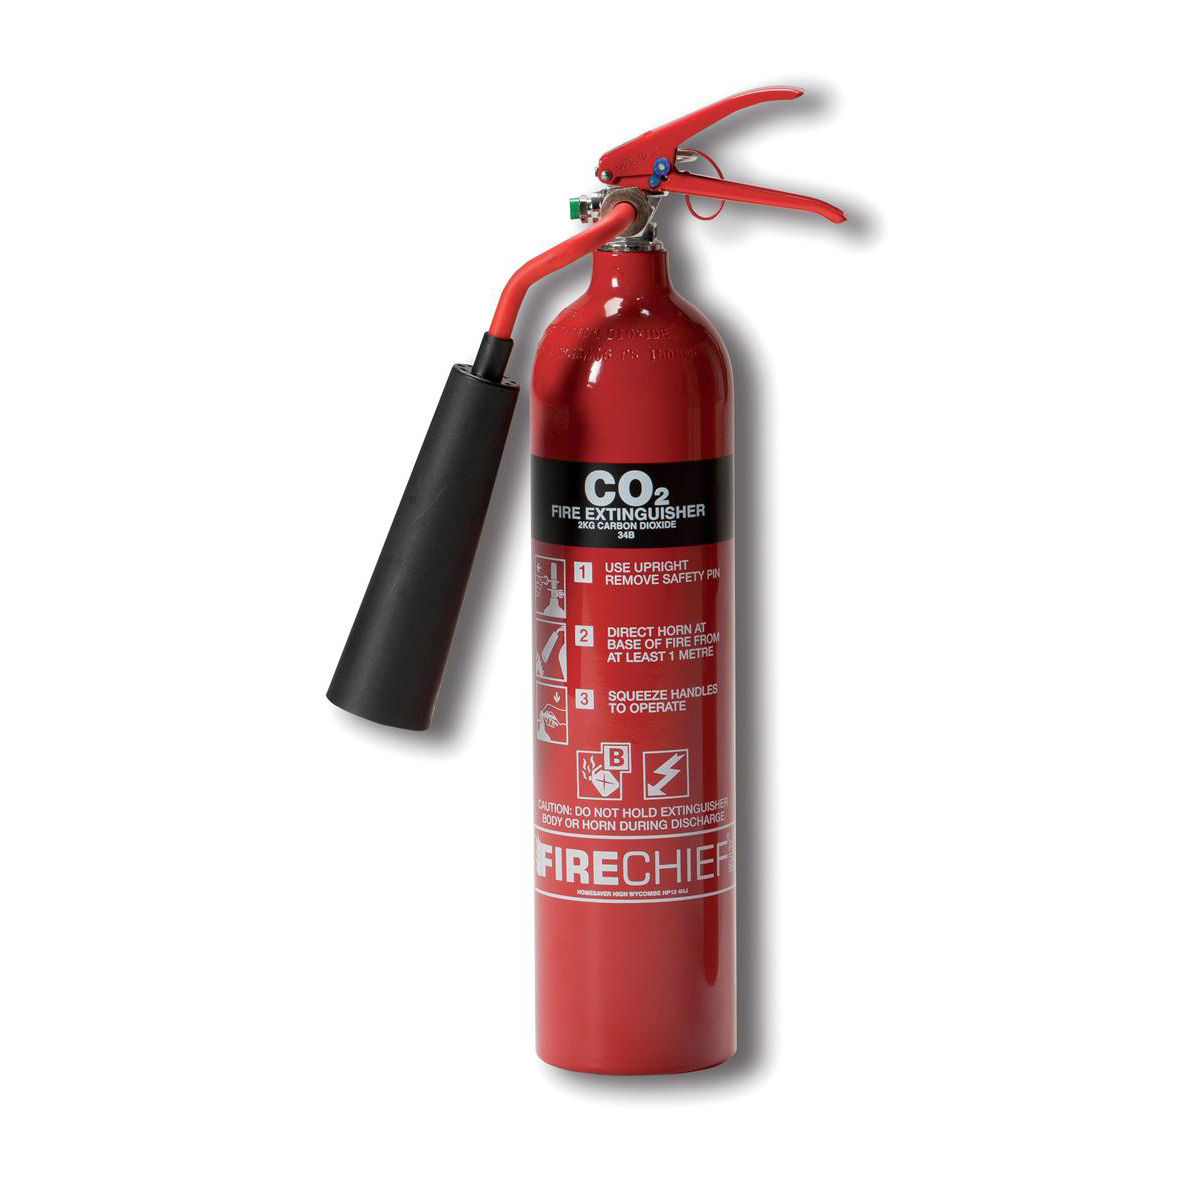 Firechief 2.0KG CO2 Fire Extinguisher for Class A, B and E Fires Ref WG10128